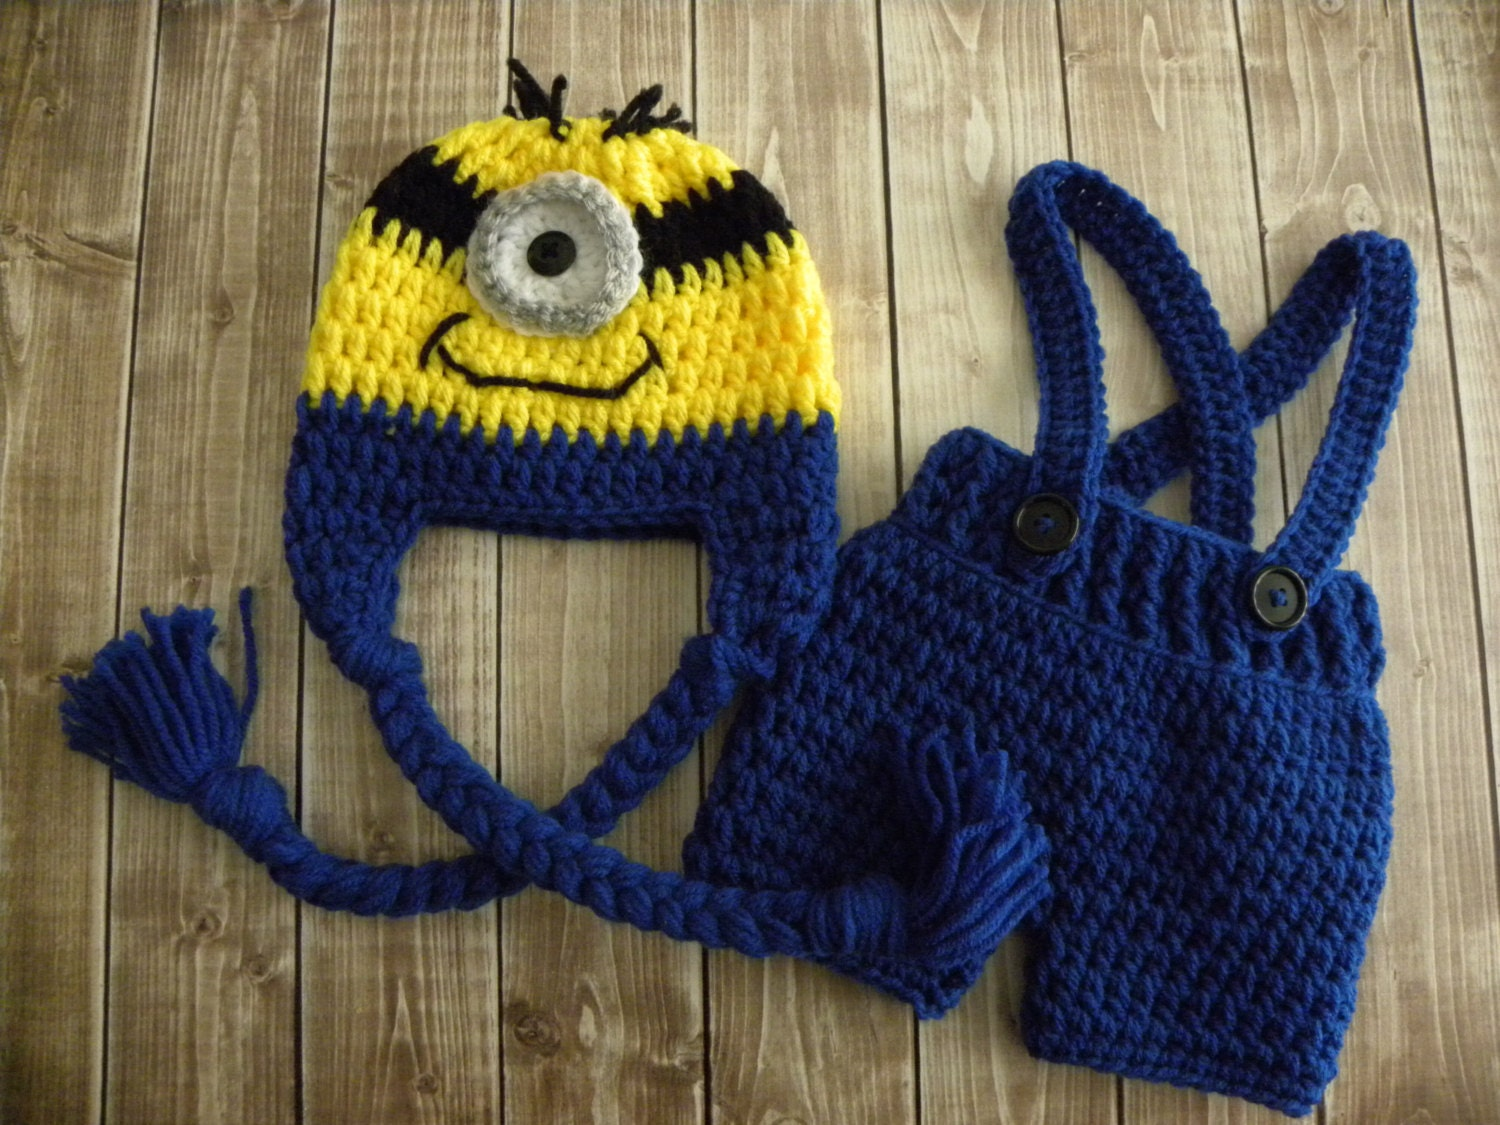 Free Crochet Pattern For Minion Hat And Overalls : Minion Inspired hat and short overalls. Crochet minion